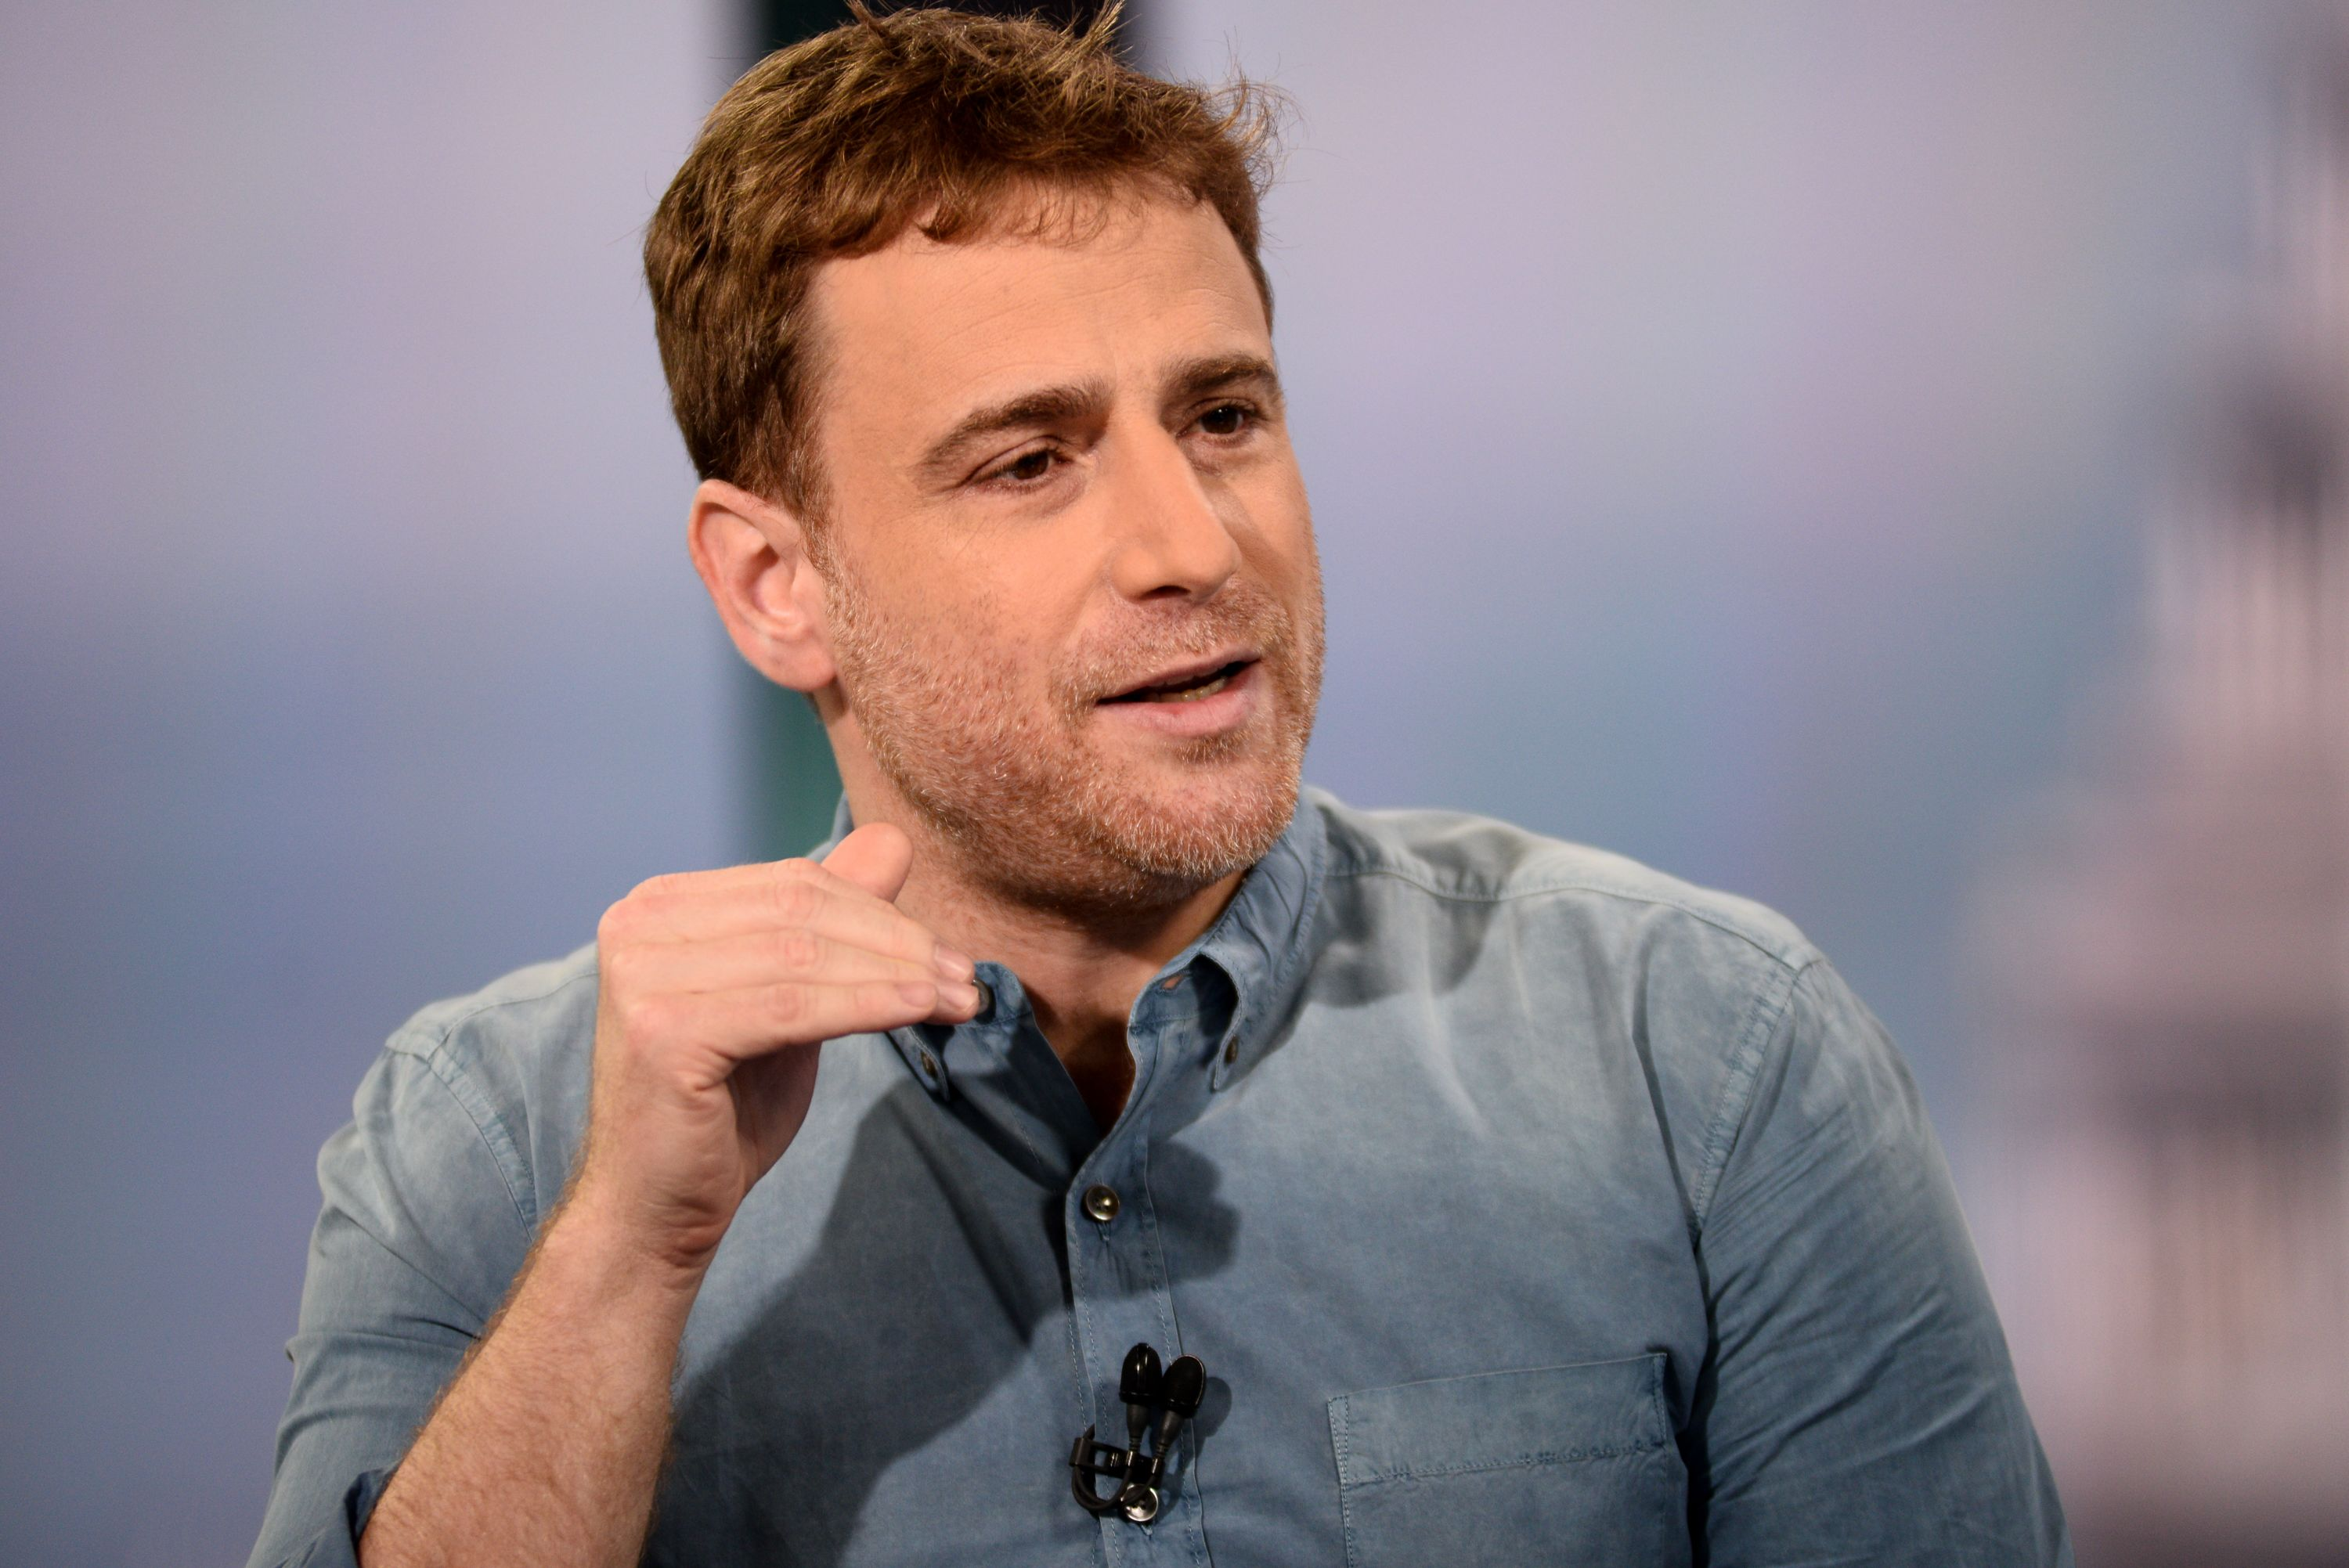 Slack CEO predicts end of company email as we know it in 7 years